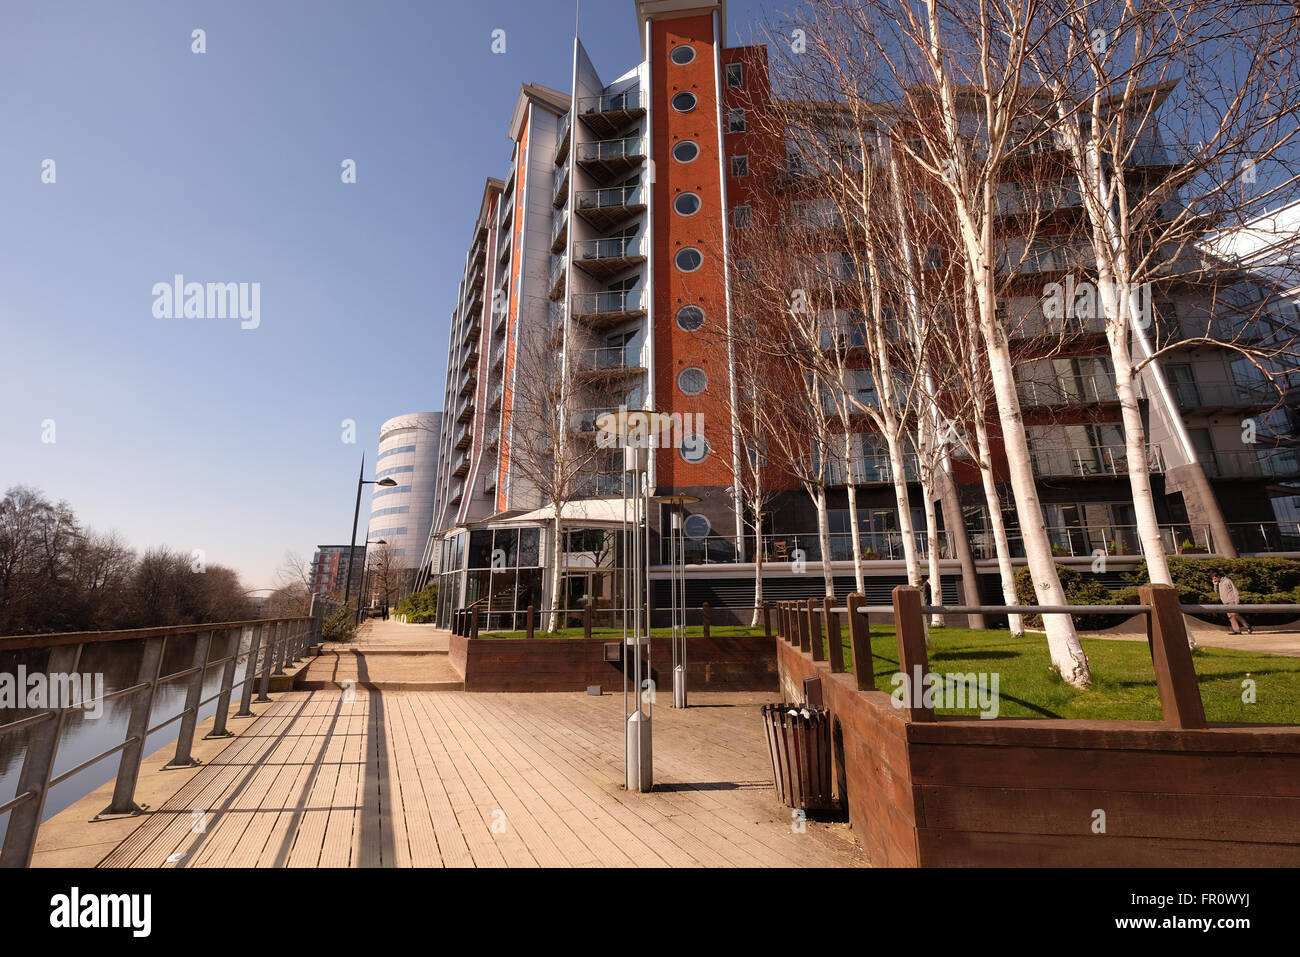 Leeds riverside, new apartments - Stock Image